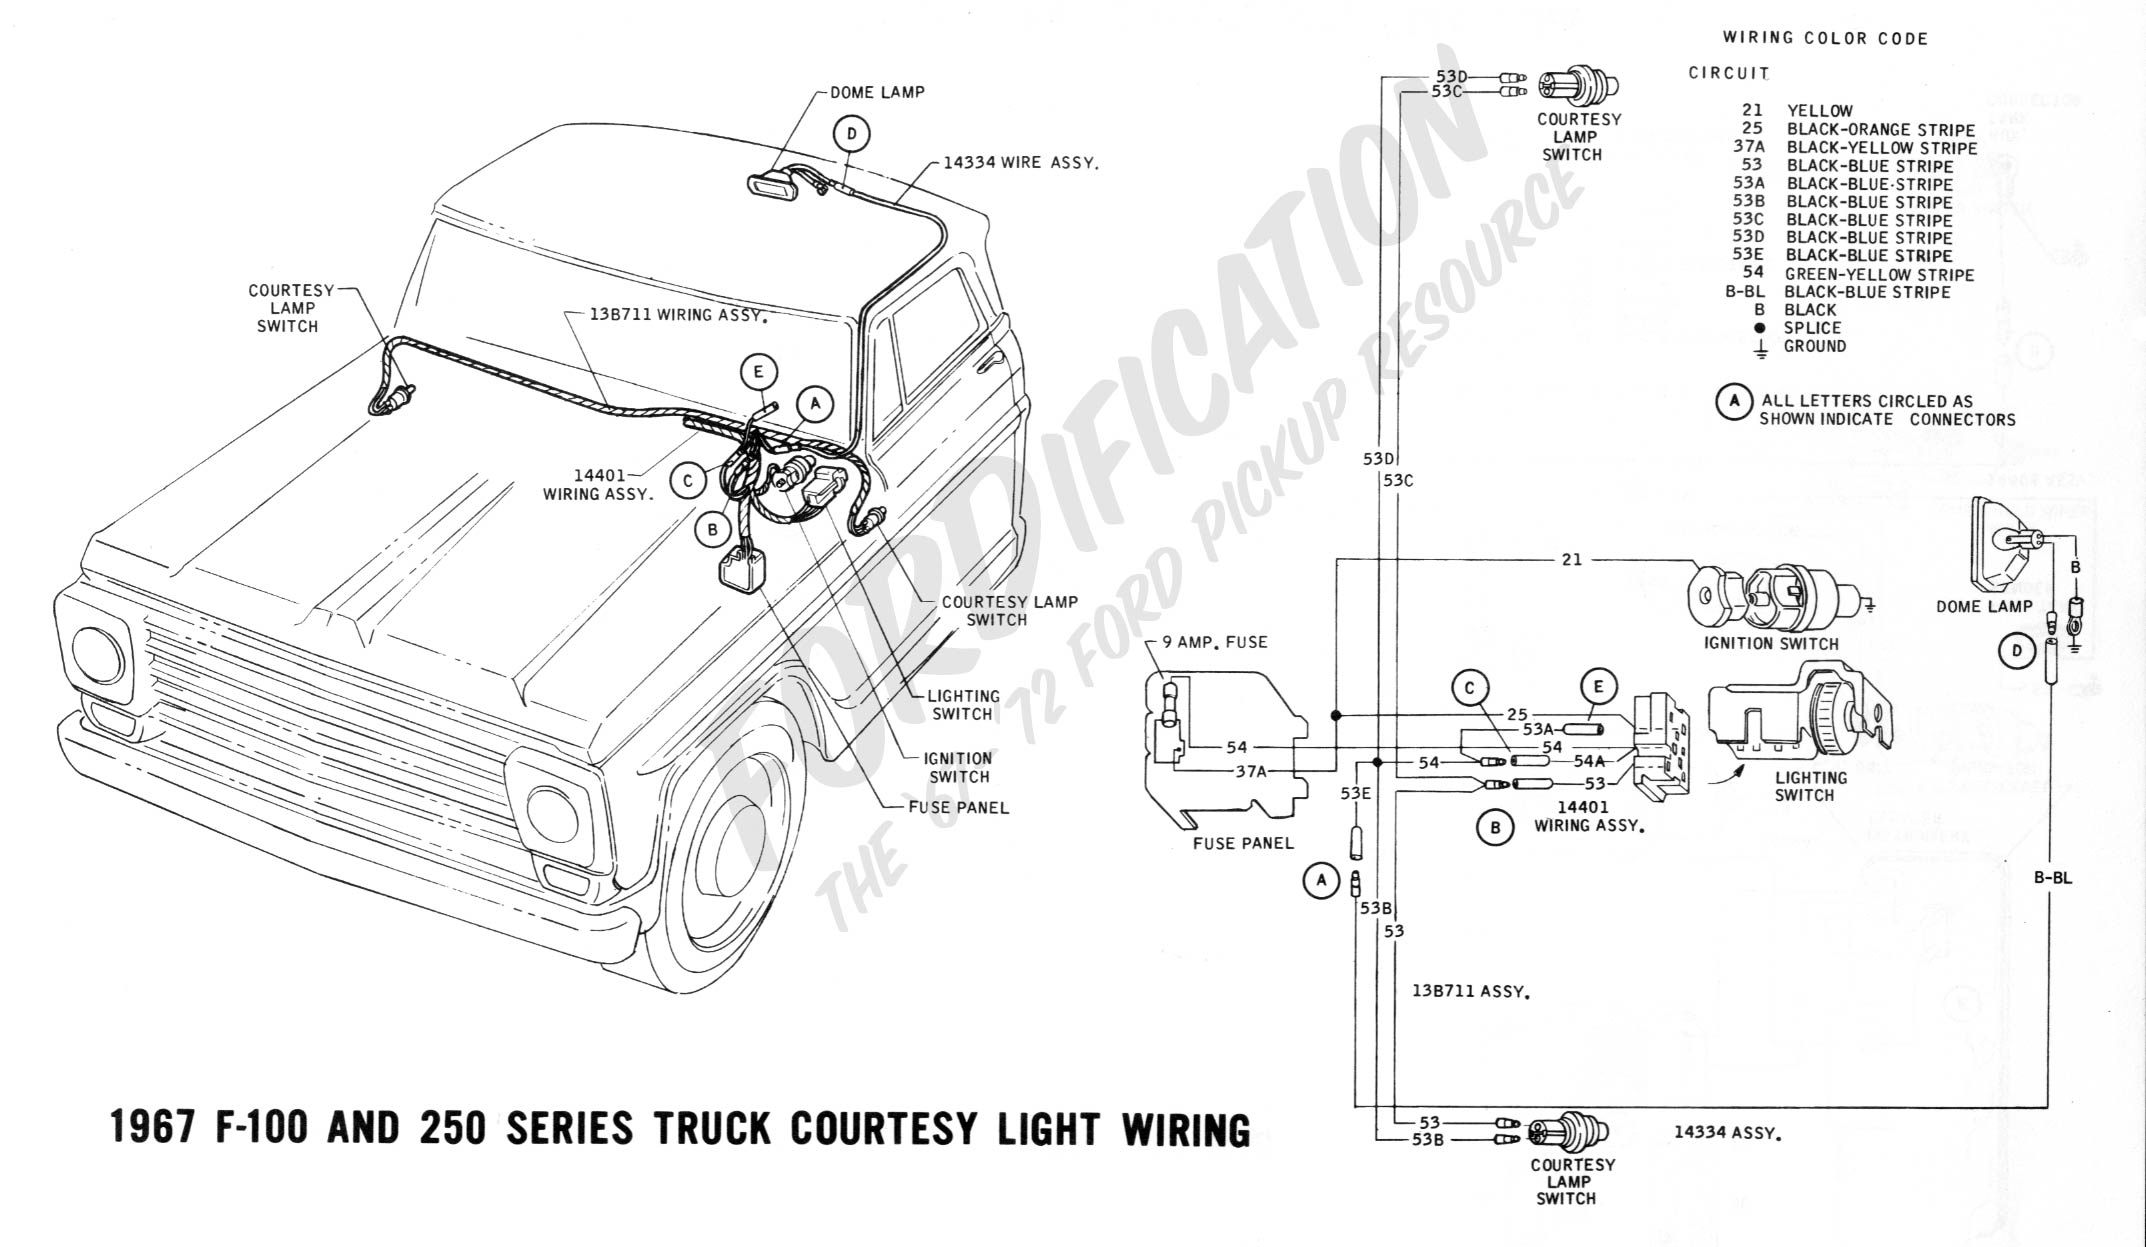 wiring 1967courtesylight ford truck technical drawings and schematics section h wiring 1969 camaro ignition switch wiring diagram at reclaimingppi.co